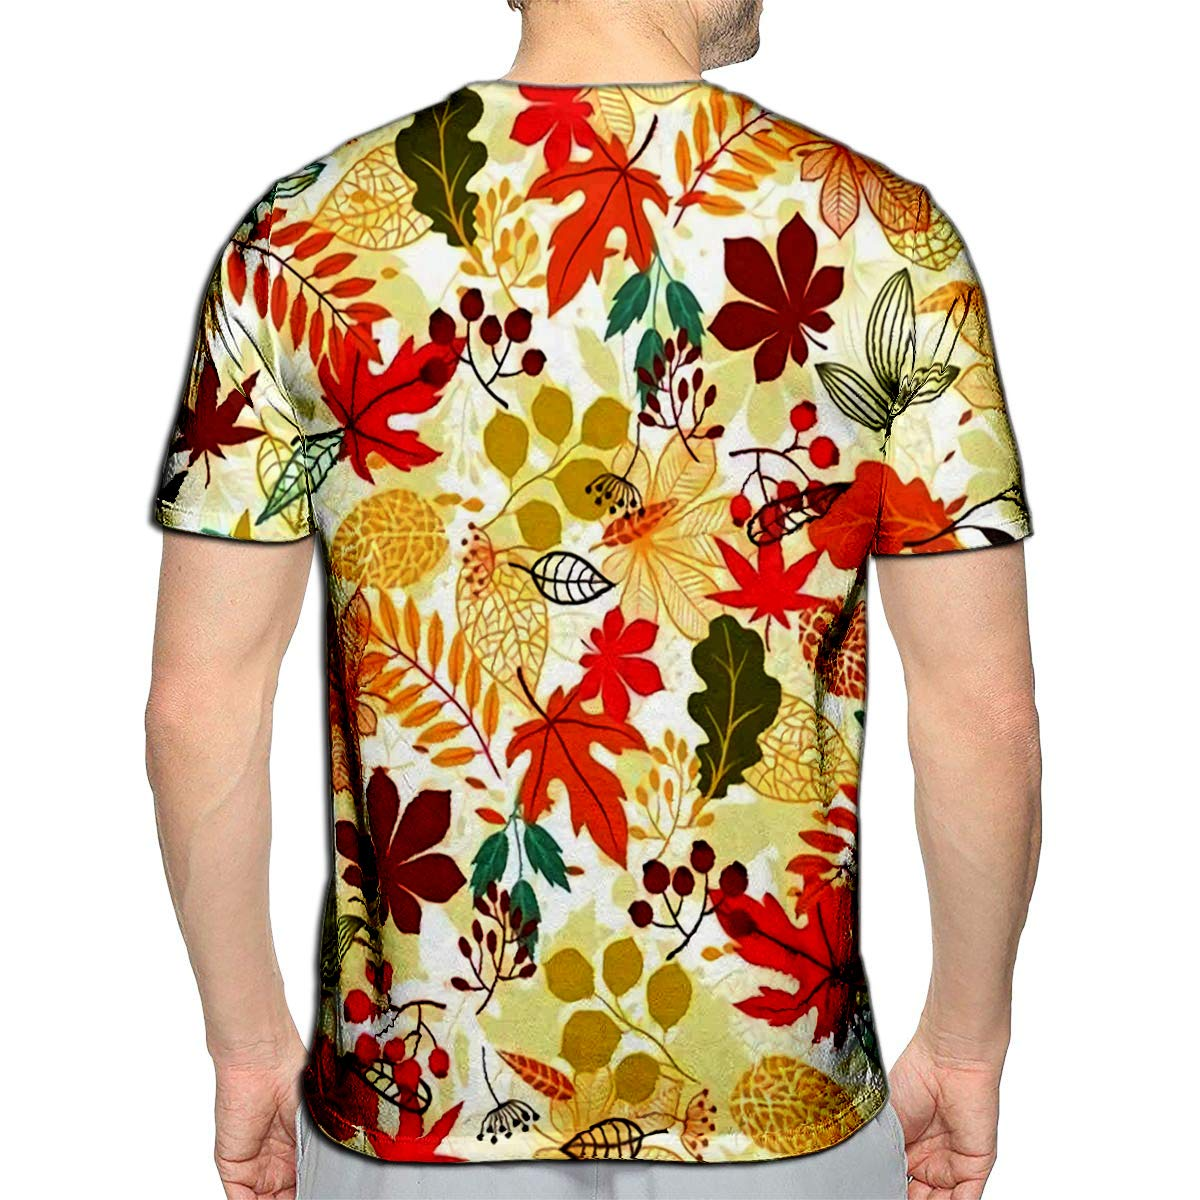 YILINGER 3D Printed T Shirts Stylized Autumn Leaves Casual Mens Hipster Top Tees